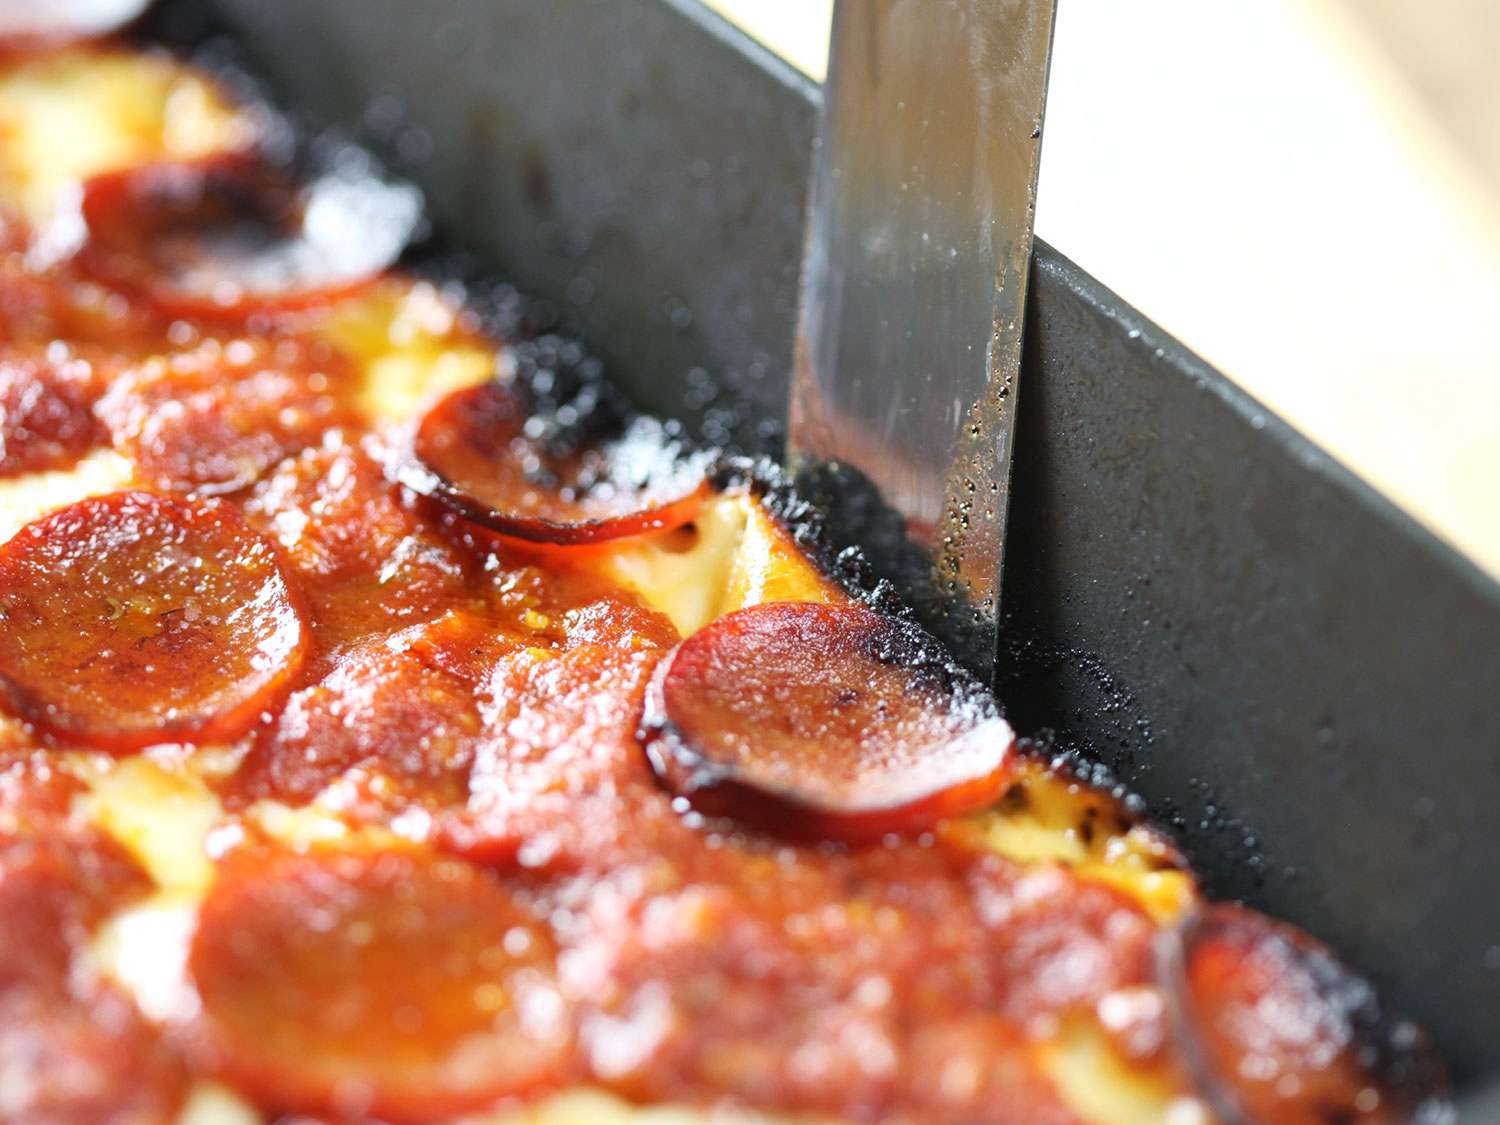 A flexible spatula sliding edges of Detroit-style pizza away from pan edge